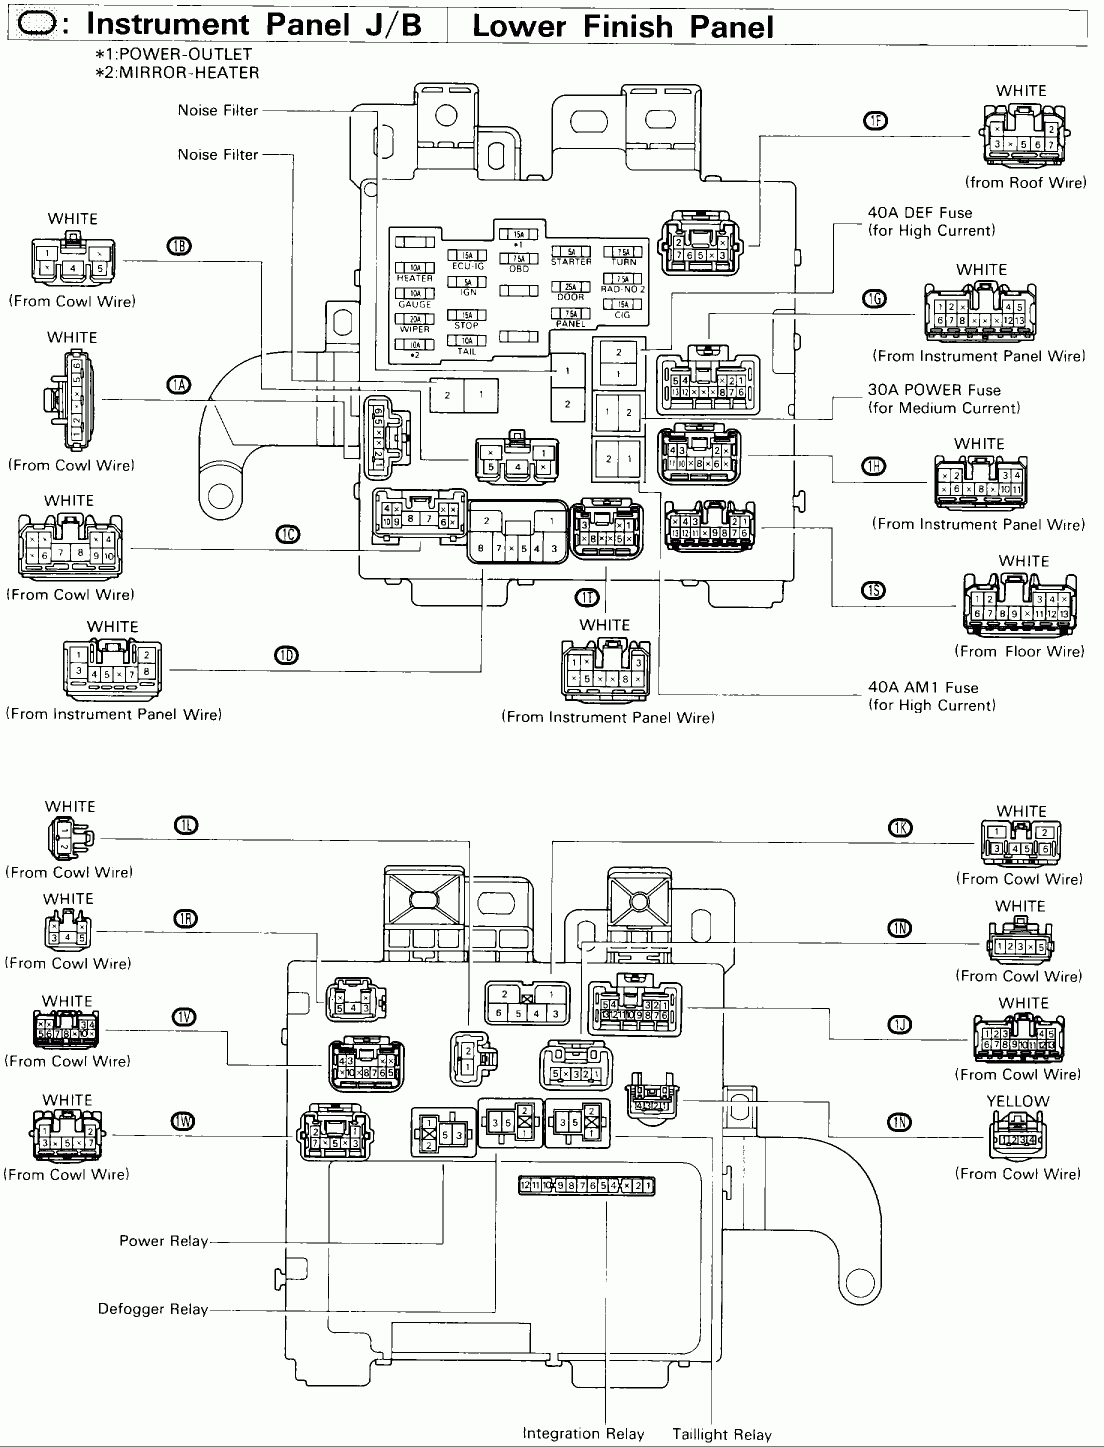 [TVPR_3874]  SE_6984] Toyota Fuse Box Diagram Fuse Box Toyota 2009 Camry Le Diagram  Download Diagram | 2009 Toyota Camry Fuse Box Layout |  | Terch Momece Genion Greas Bocep Semec Mohammedshrine Librar Wiring 101